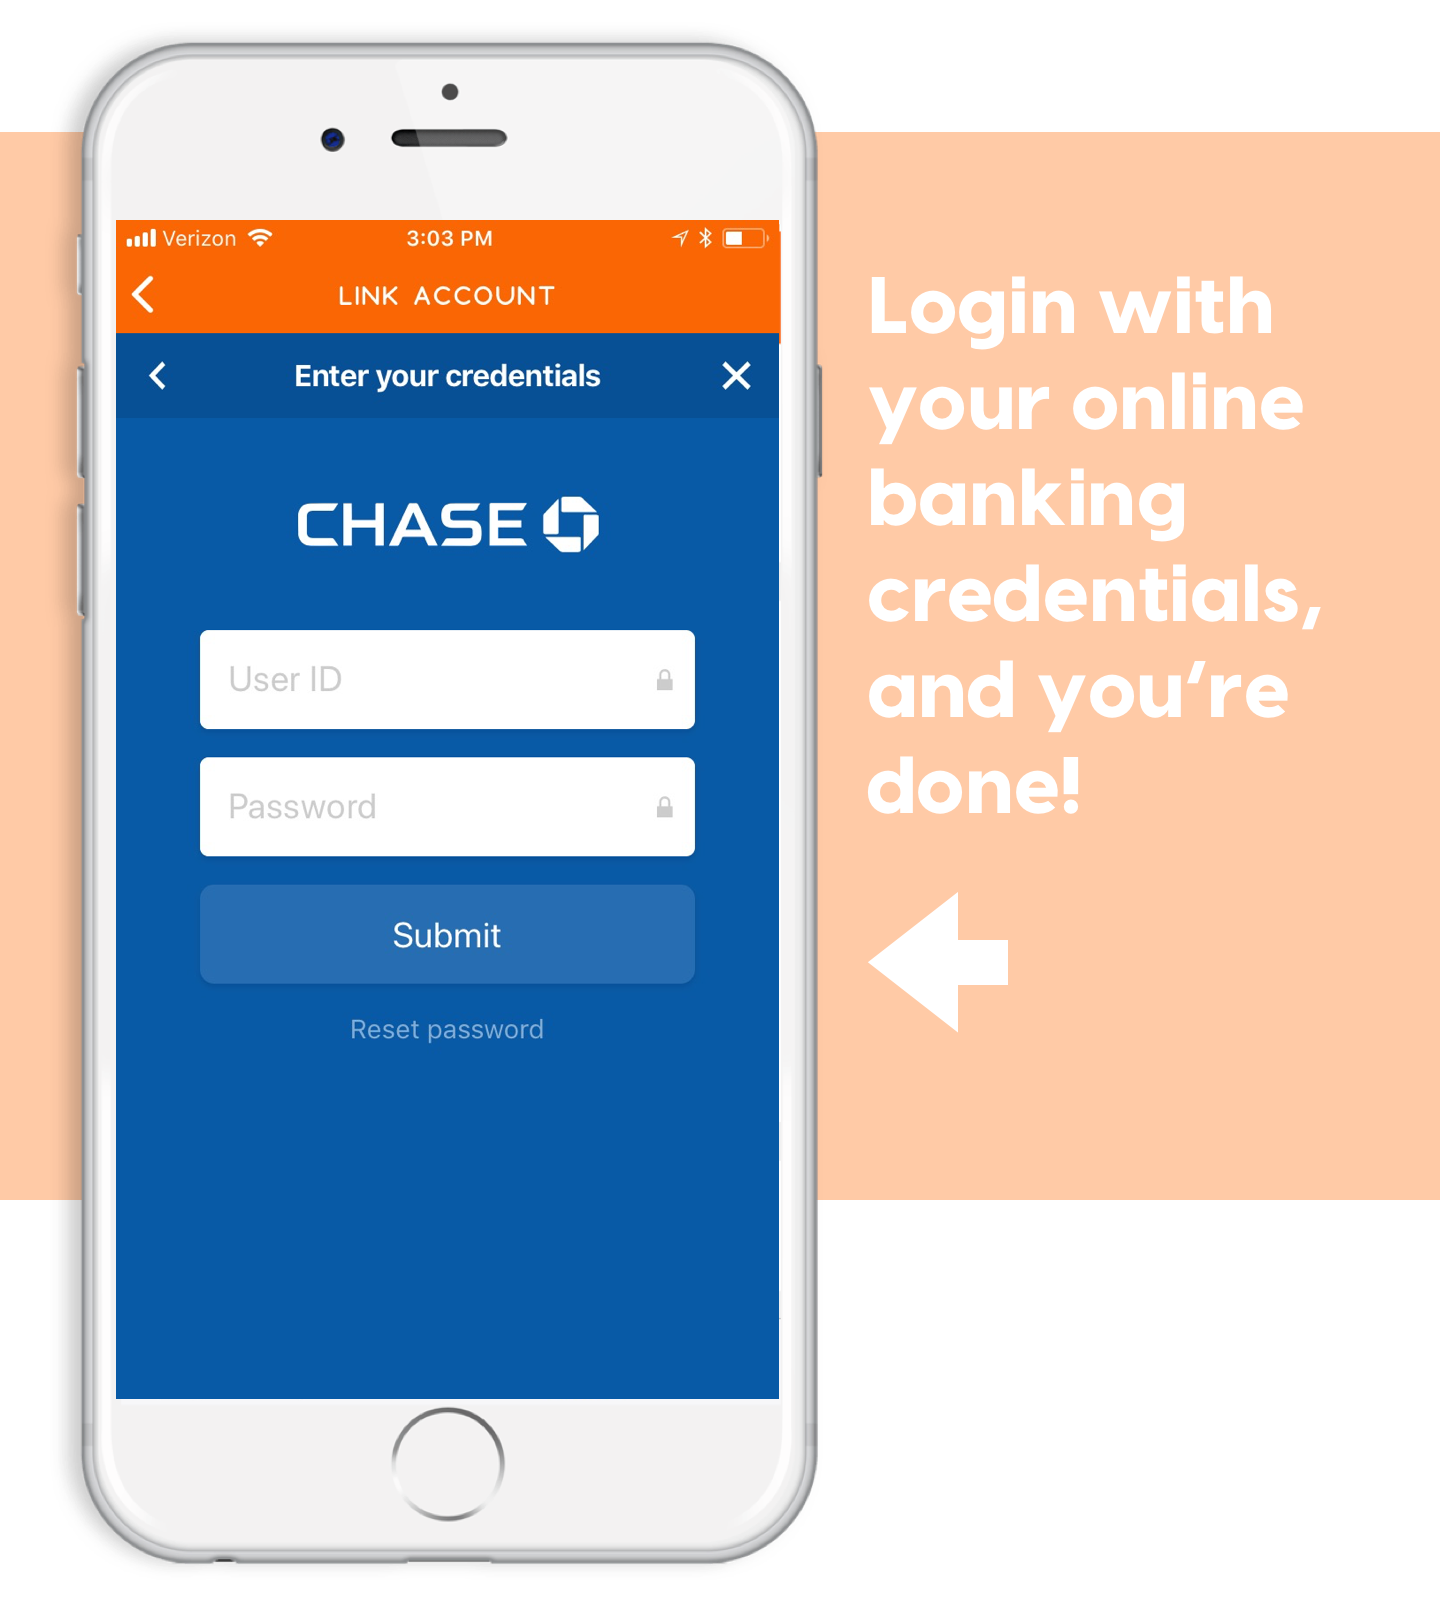 ach transfer through ponyapp login to bank